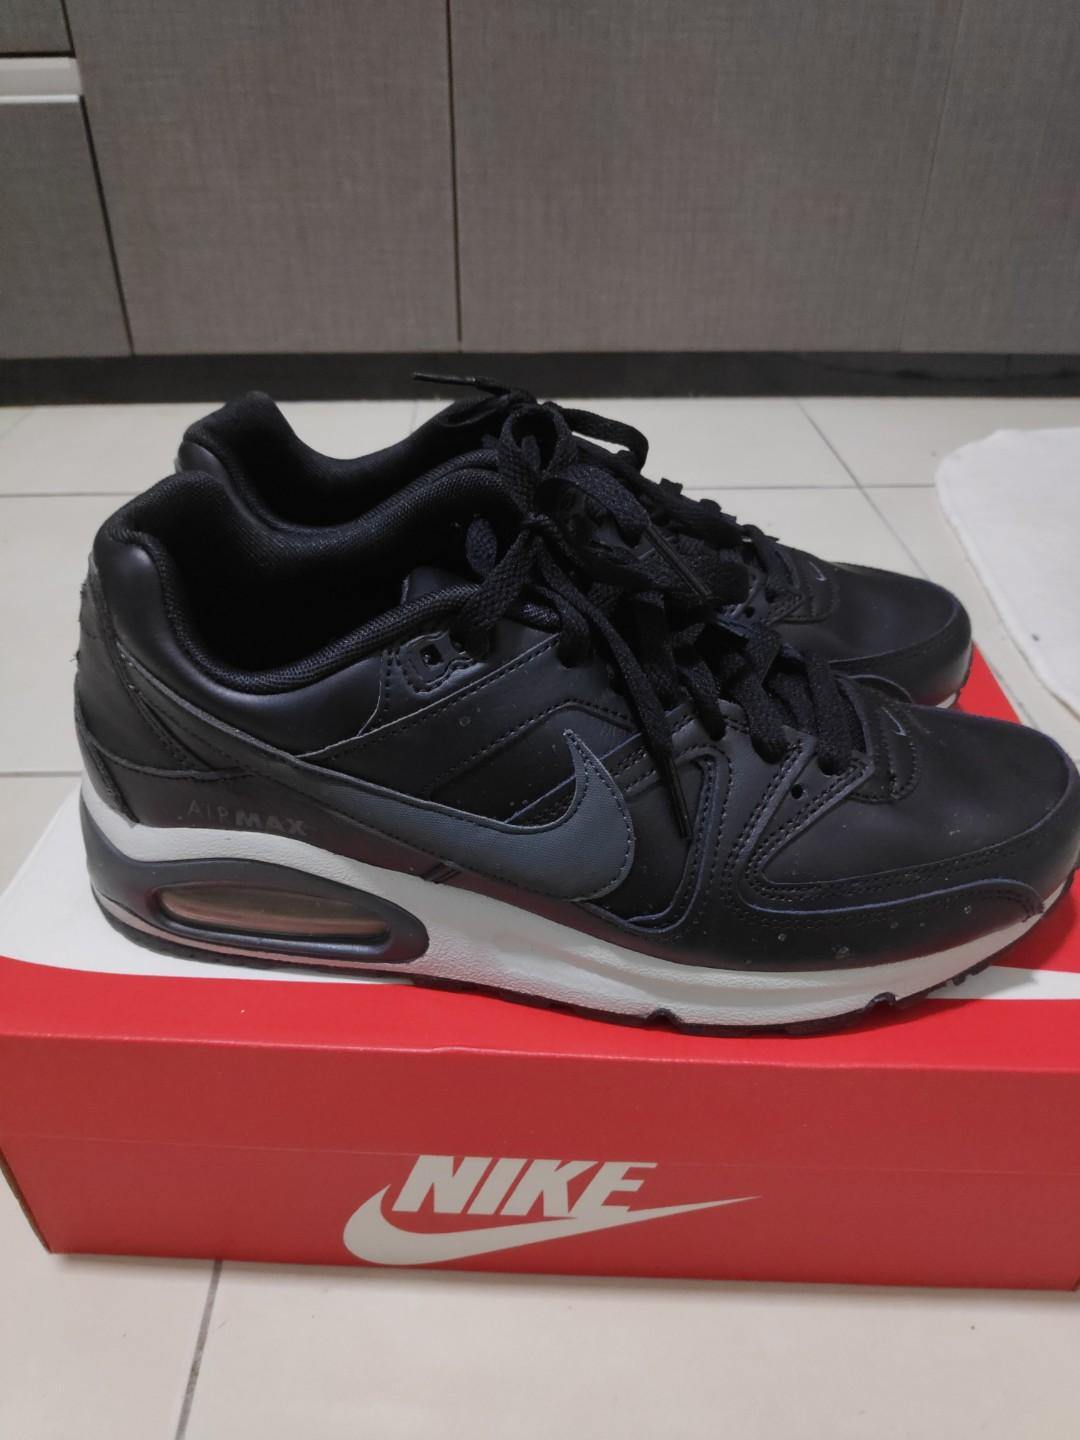 Desfavorable Donación Artista  Nike Air Max Command Leather (Black)., Men's Fashion, Footwear, Sneakers on  Carousell